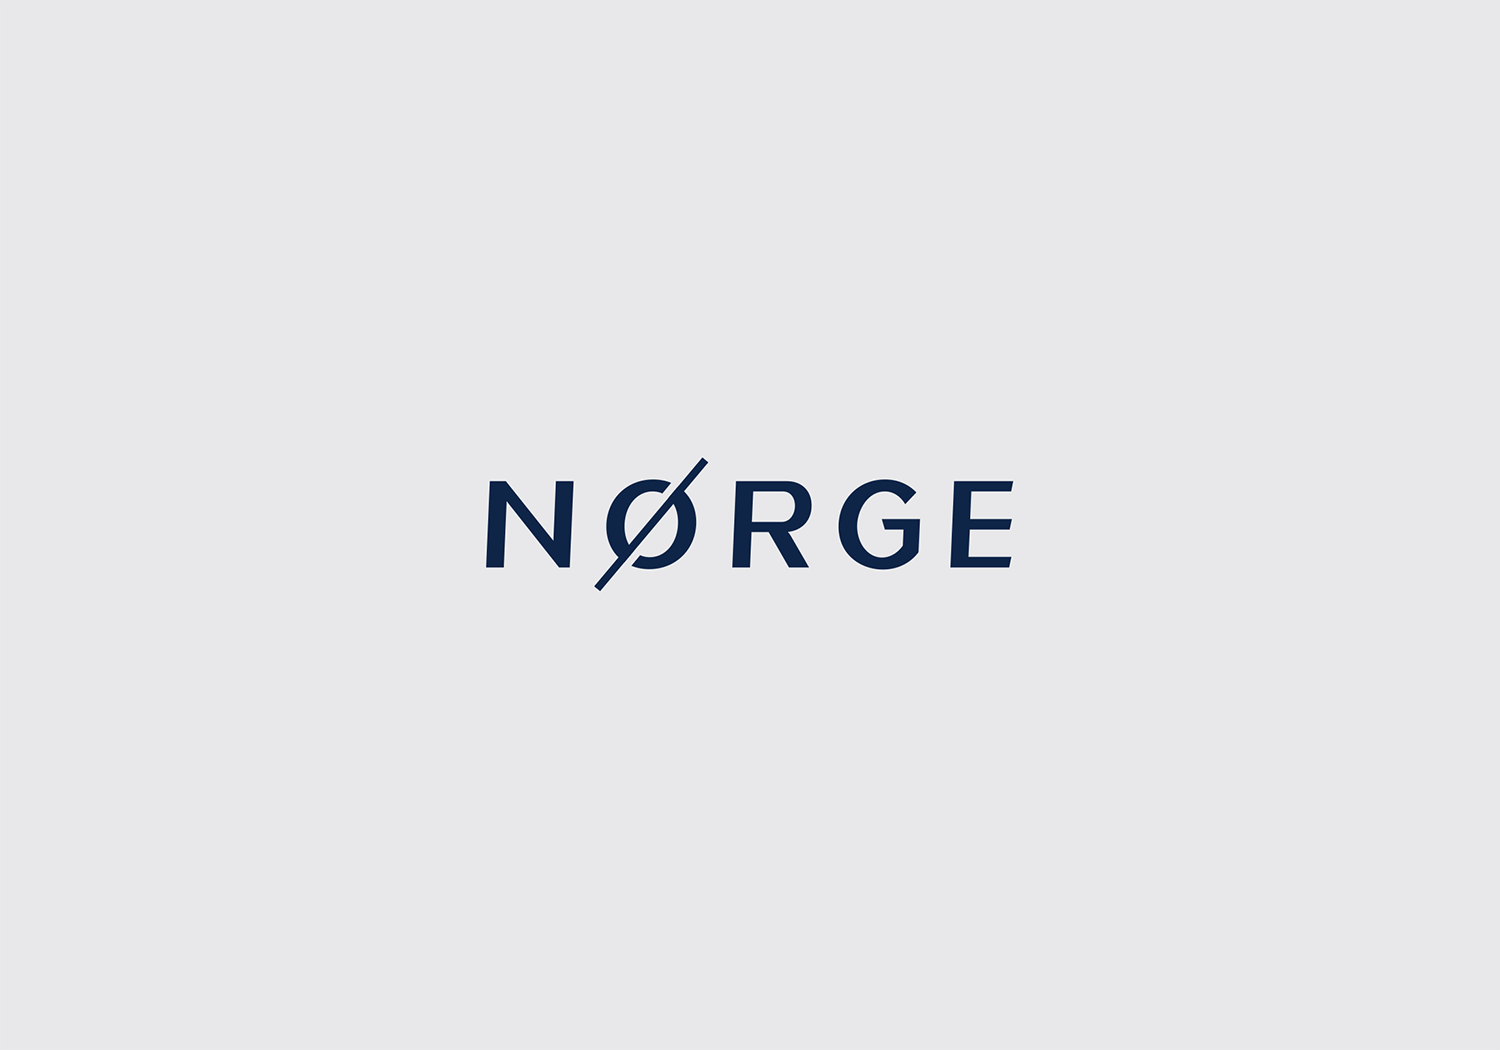 norge_01